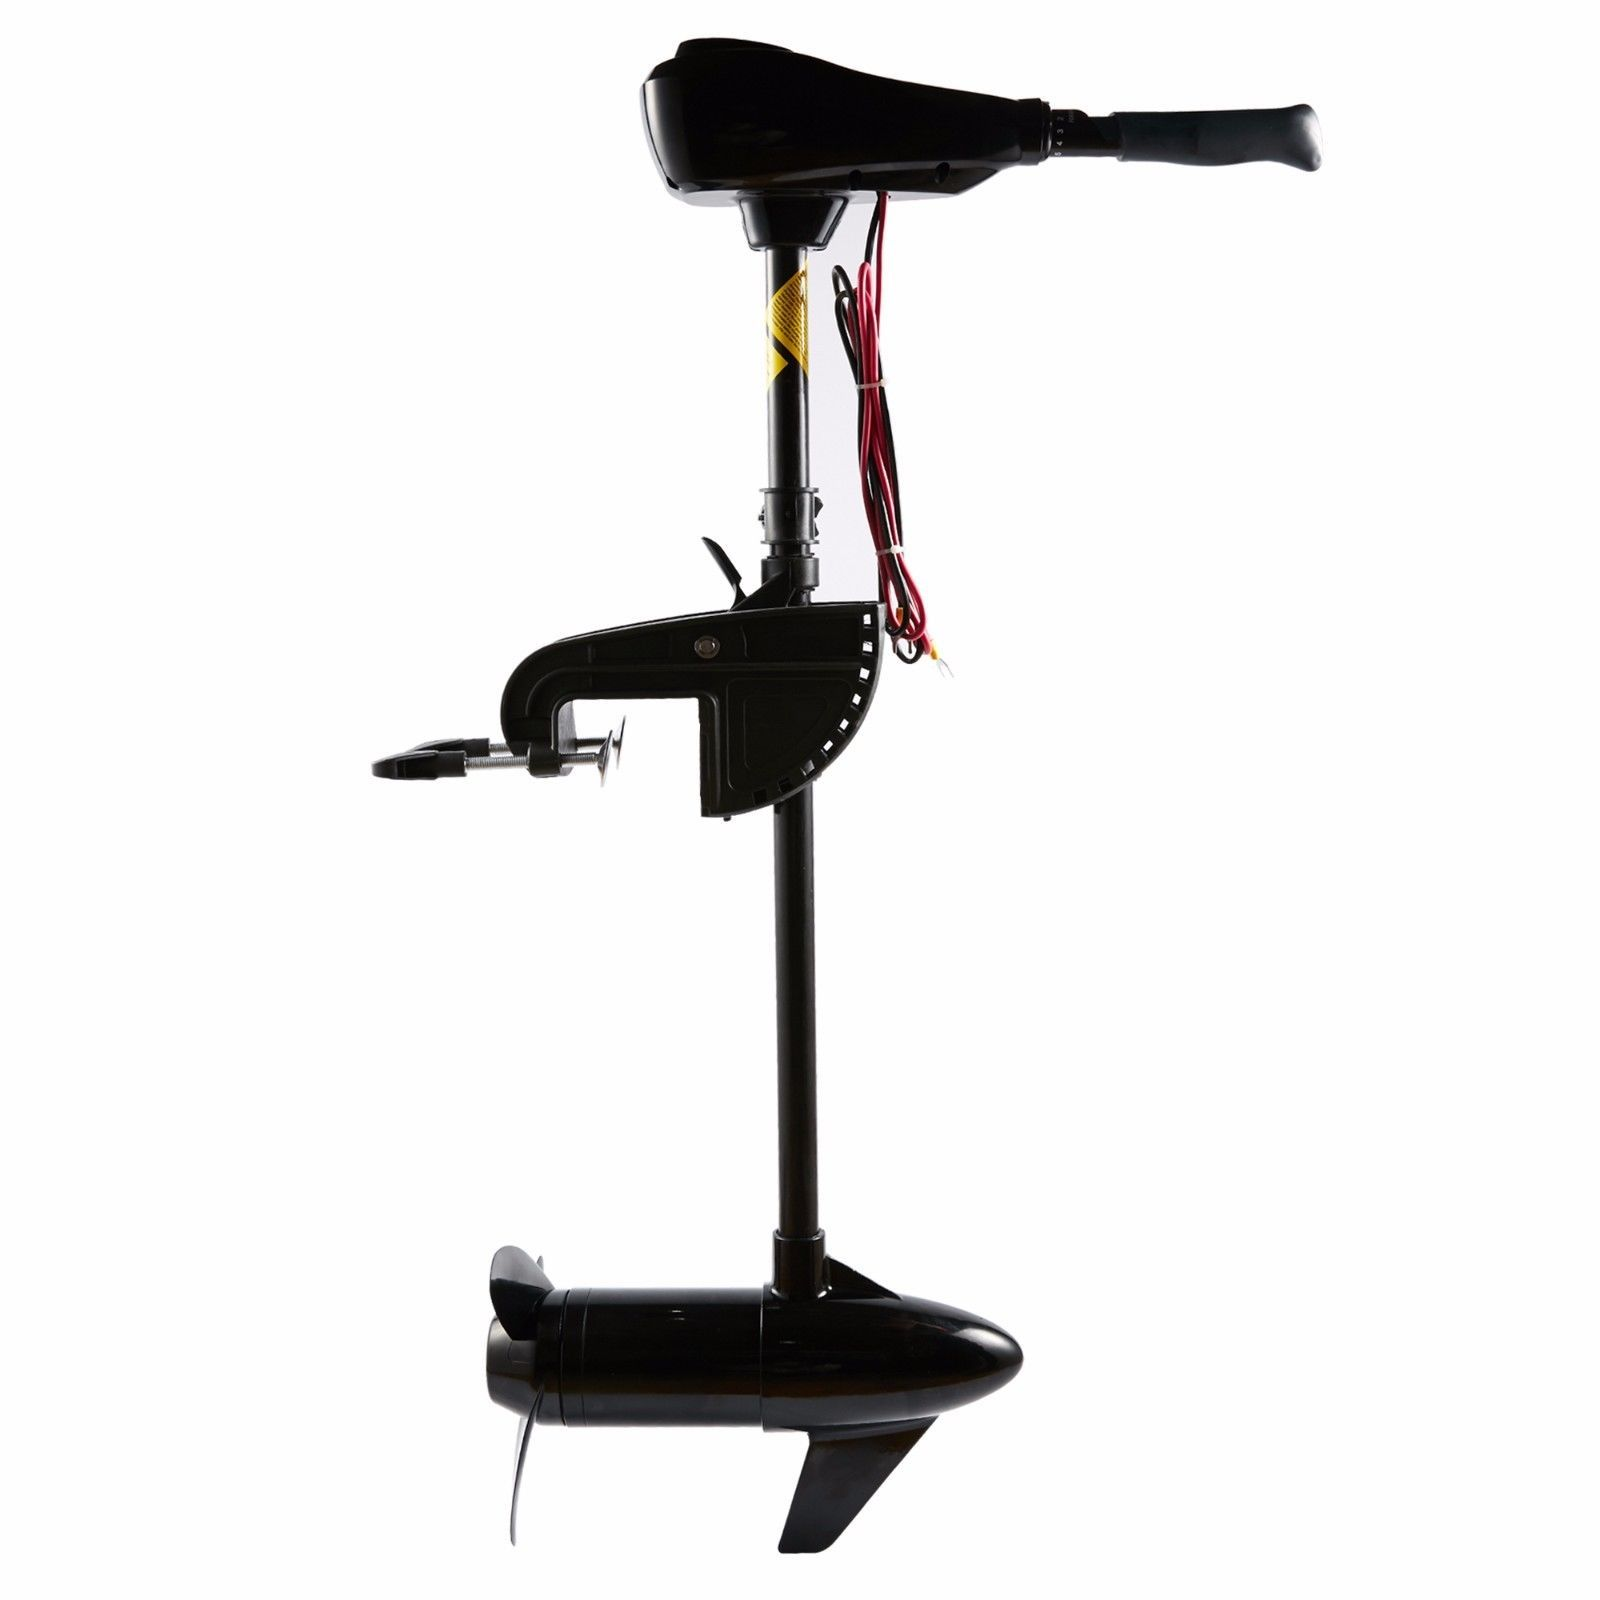 Cloud Mountain 60LBS Thrust Electric Trolling Motor for Fishing Boats